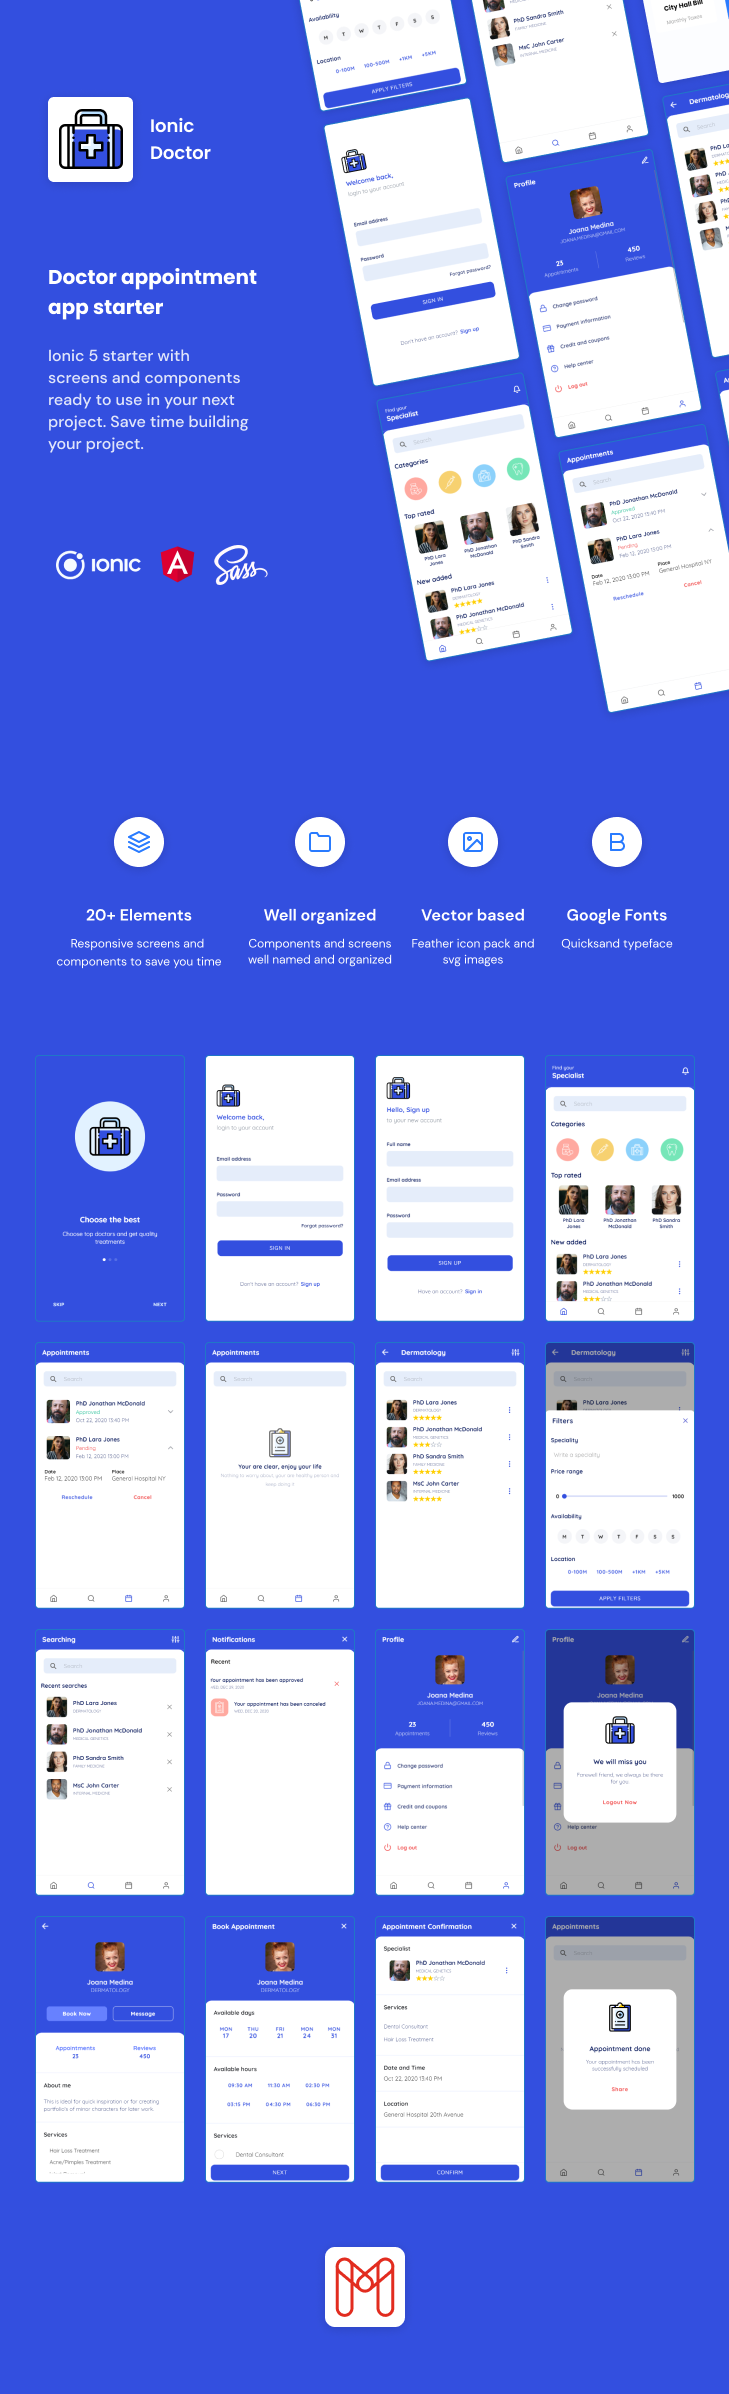 Ionic Doctor | Ionic 5 | Angular | UI Theme | Template App | Starter App & Components - 1